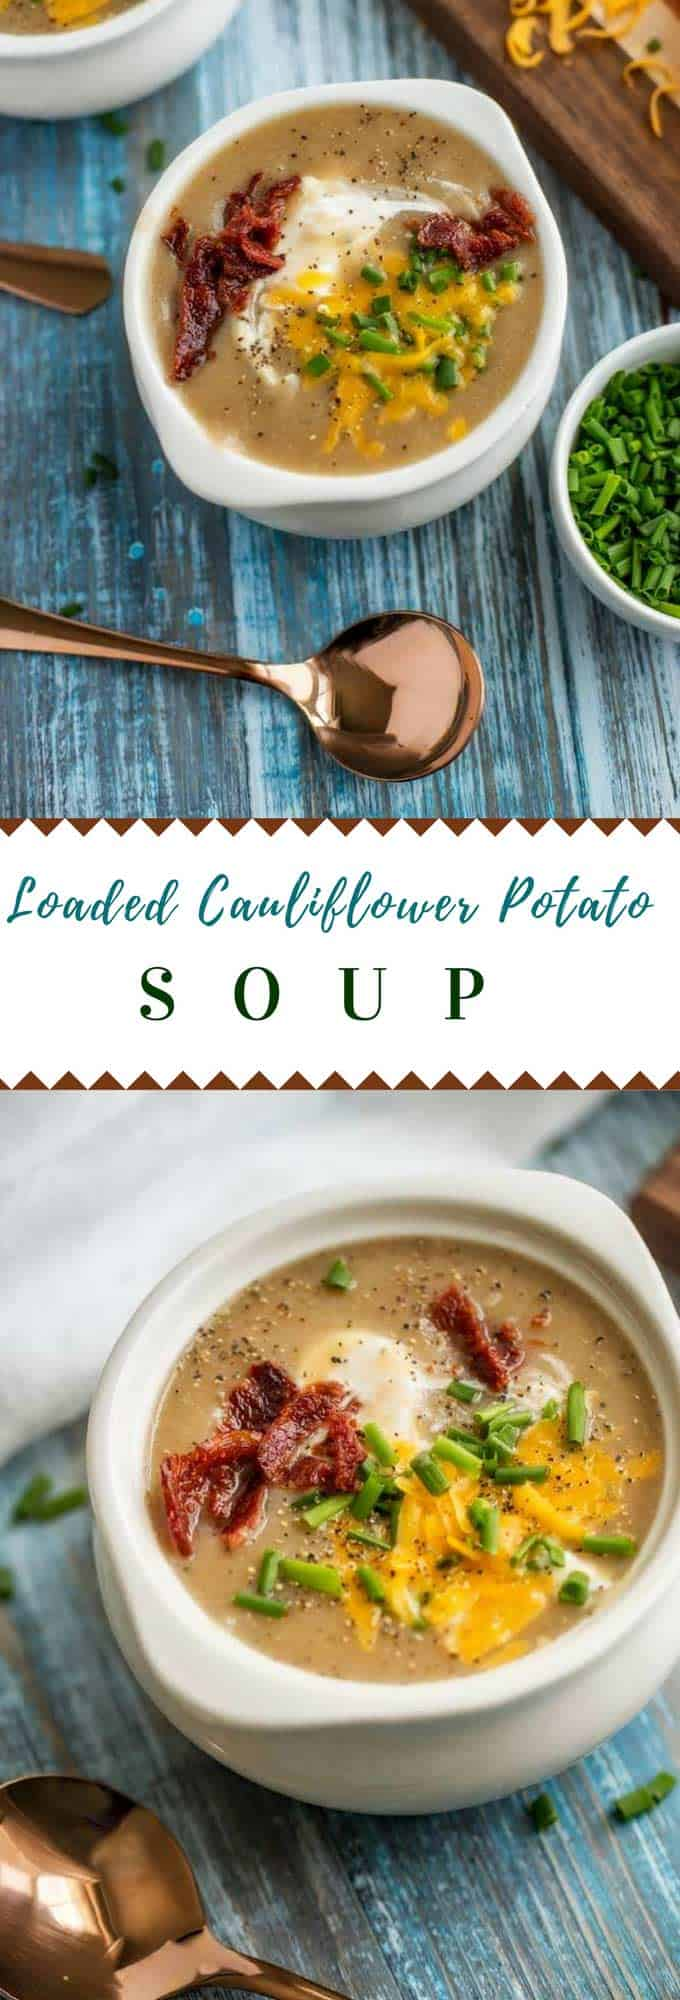 This creamy Cauliflower Potato Soup is a deliciously healthy alternative to potato soup that is made without milk or cream. The carbs are kept in check by the addition of cauliflower, but I promise, you won't miss a thing! This Cauliflower and Potato Soup is topped off with sour cream, chives, cheese, and bacon, making this healthier soup recipe one the whole family will crave! #soup #healthysoup #potatosoup #cauliflowersoup #glutenfree